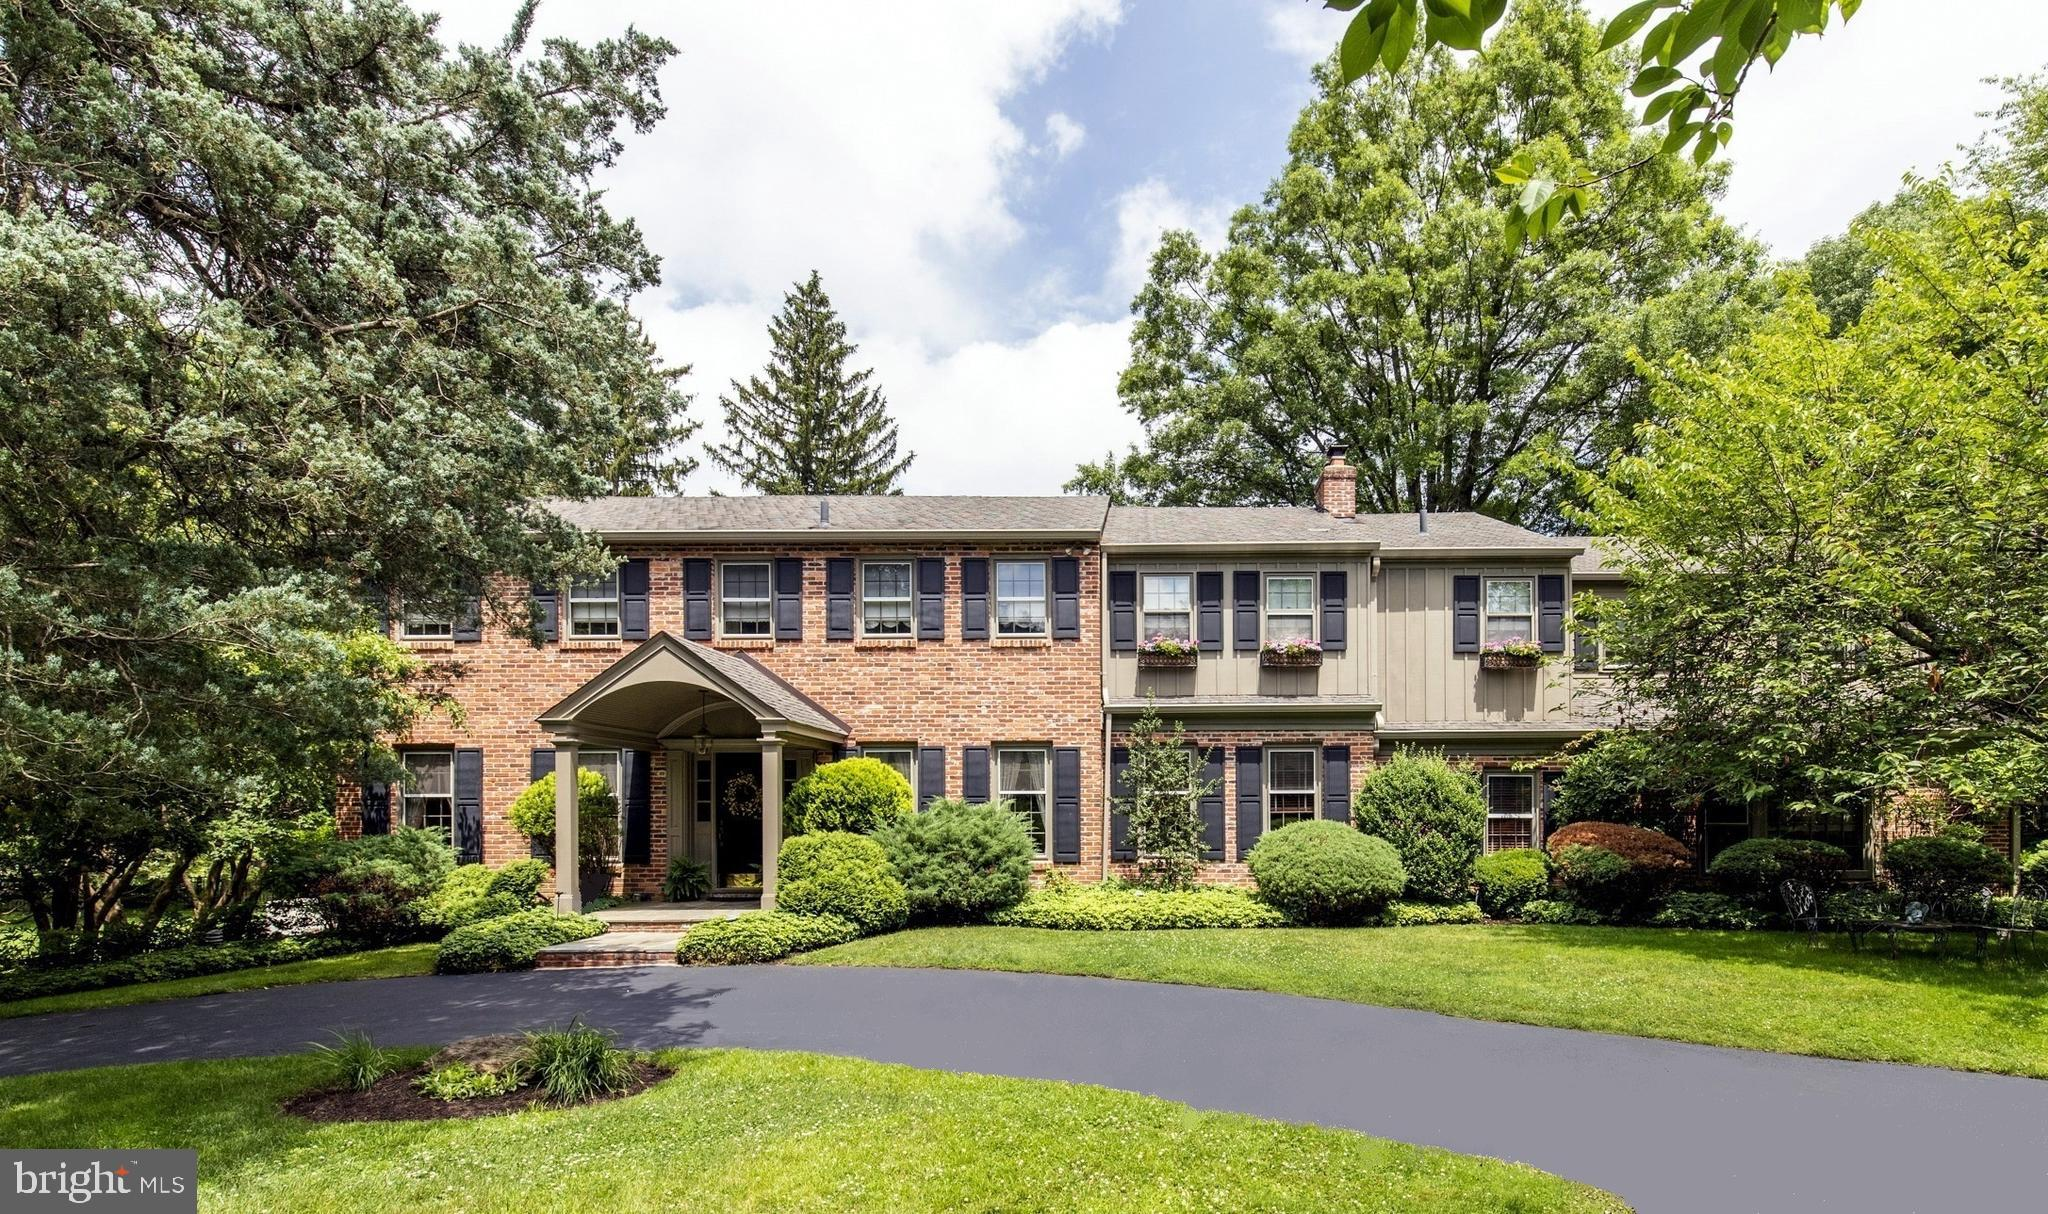 315 CHERRY LANE, WYNNEWOOD, PA 19096